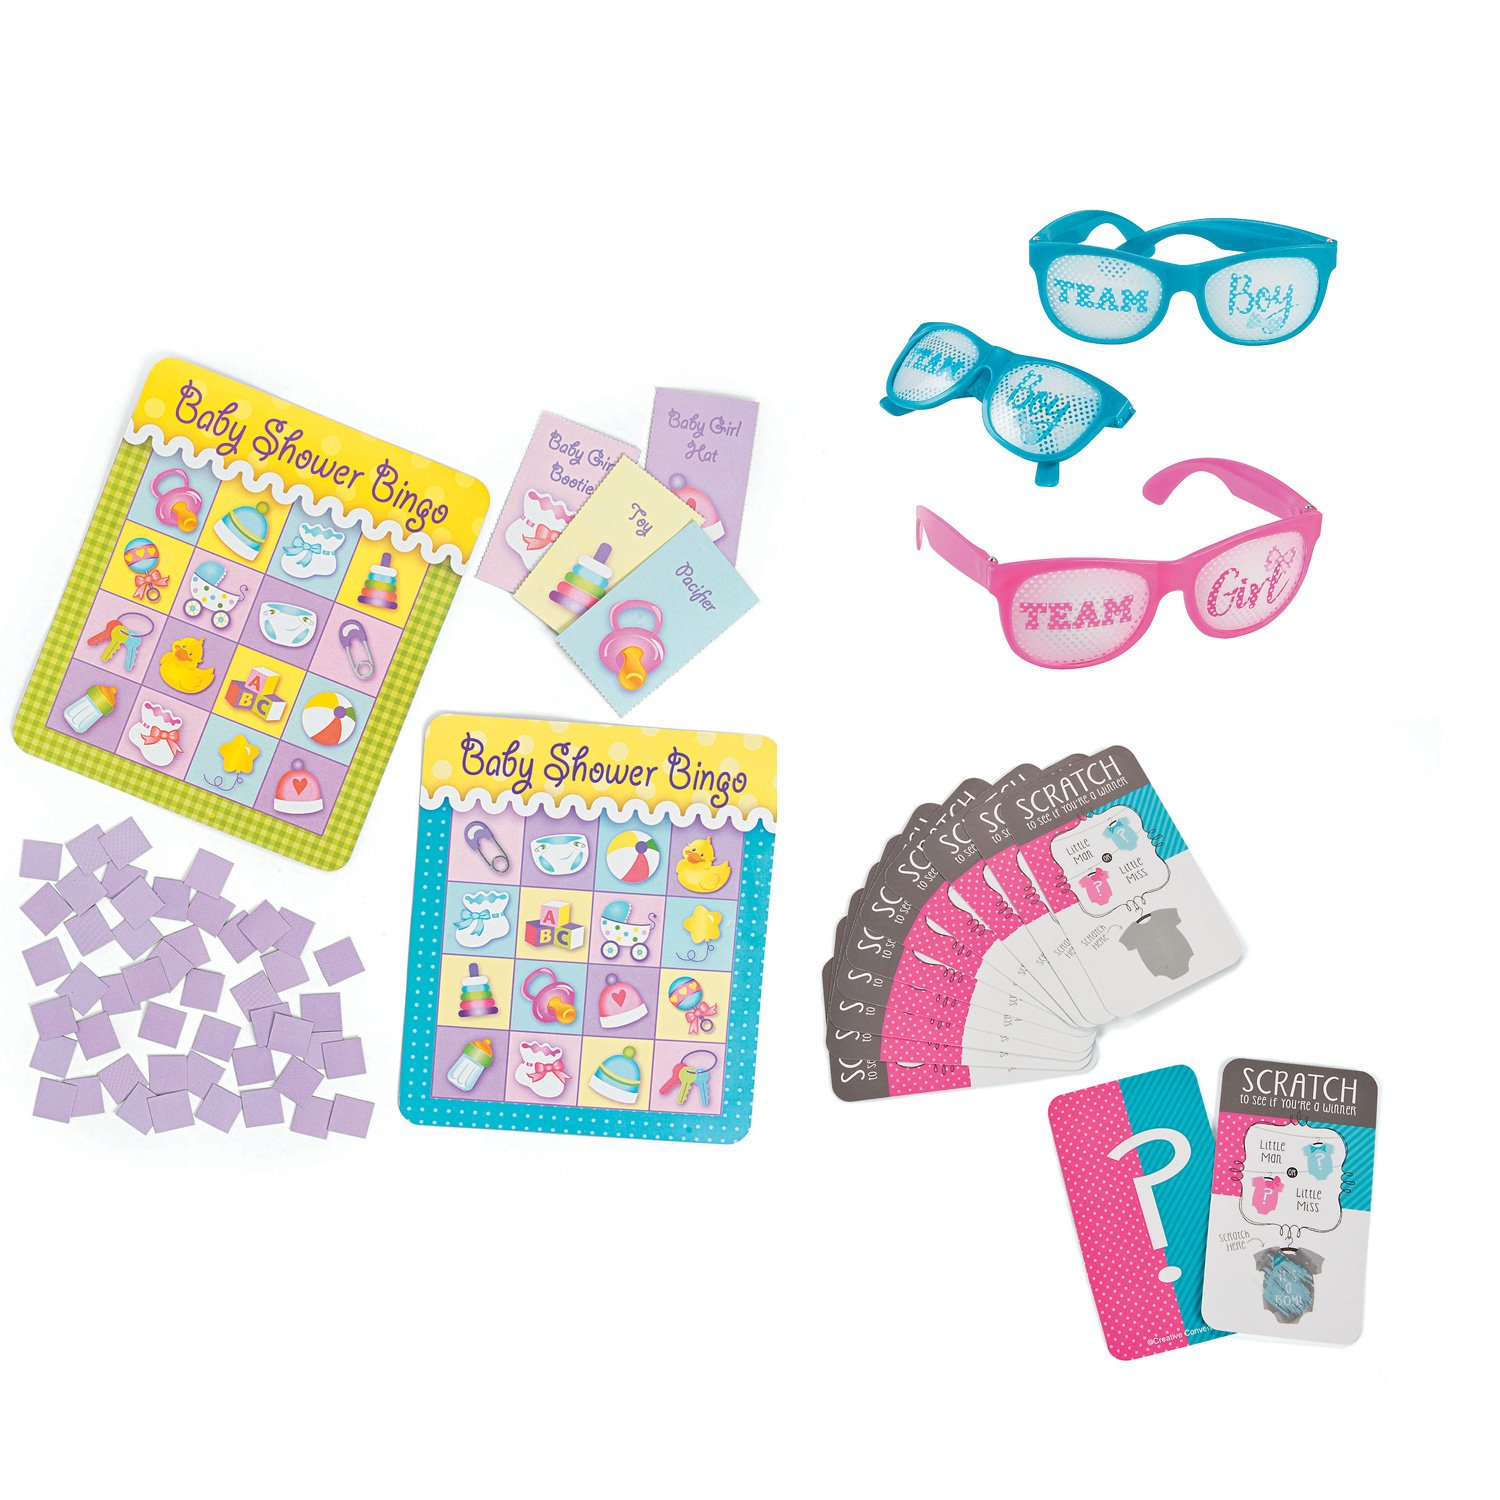 William & Douglas Team Boy & Team Girl Party Bundle | Games & Favors for Boy Gender Reveal Parties | Scratch-Off Game - Boy, Team Boy & Team Girl Pinhole Glasses and Baby Shower Bingo Game by William & Douglas